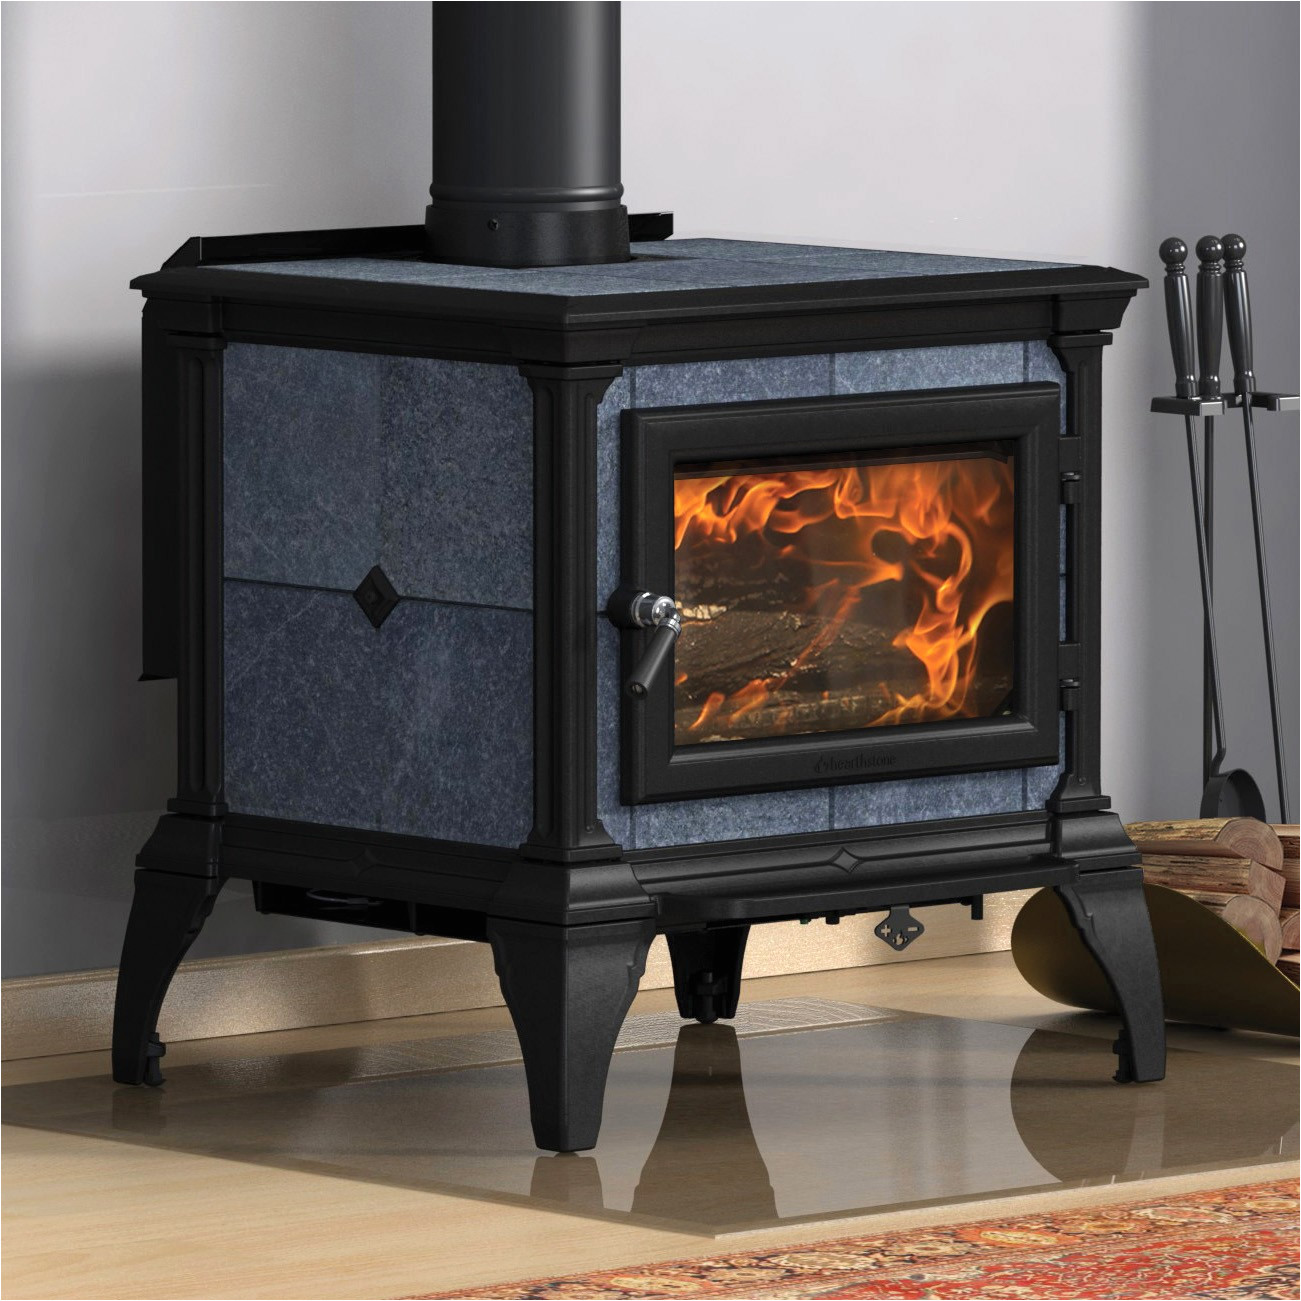 brilliant all nighter wood stove great wood stoves for sale in ct